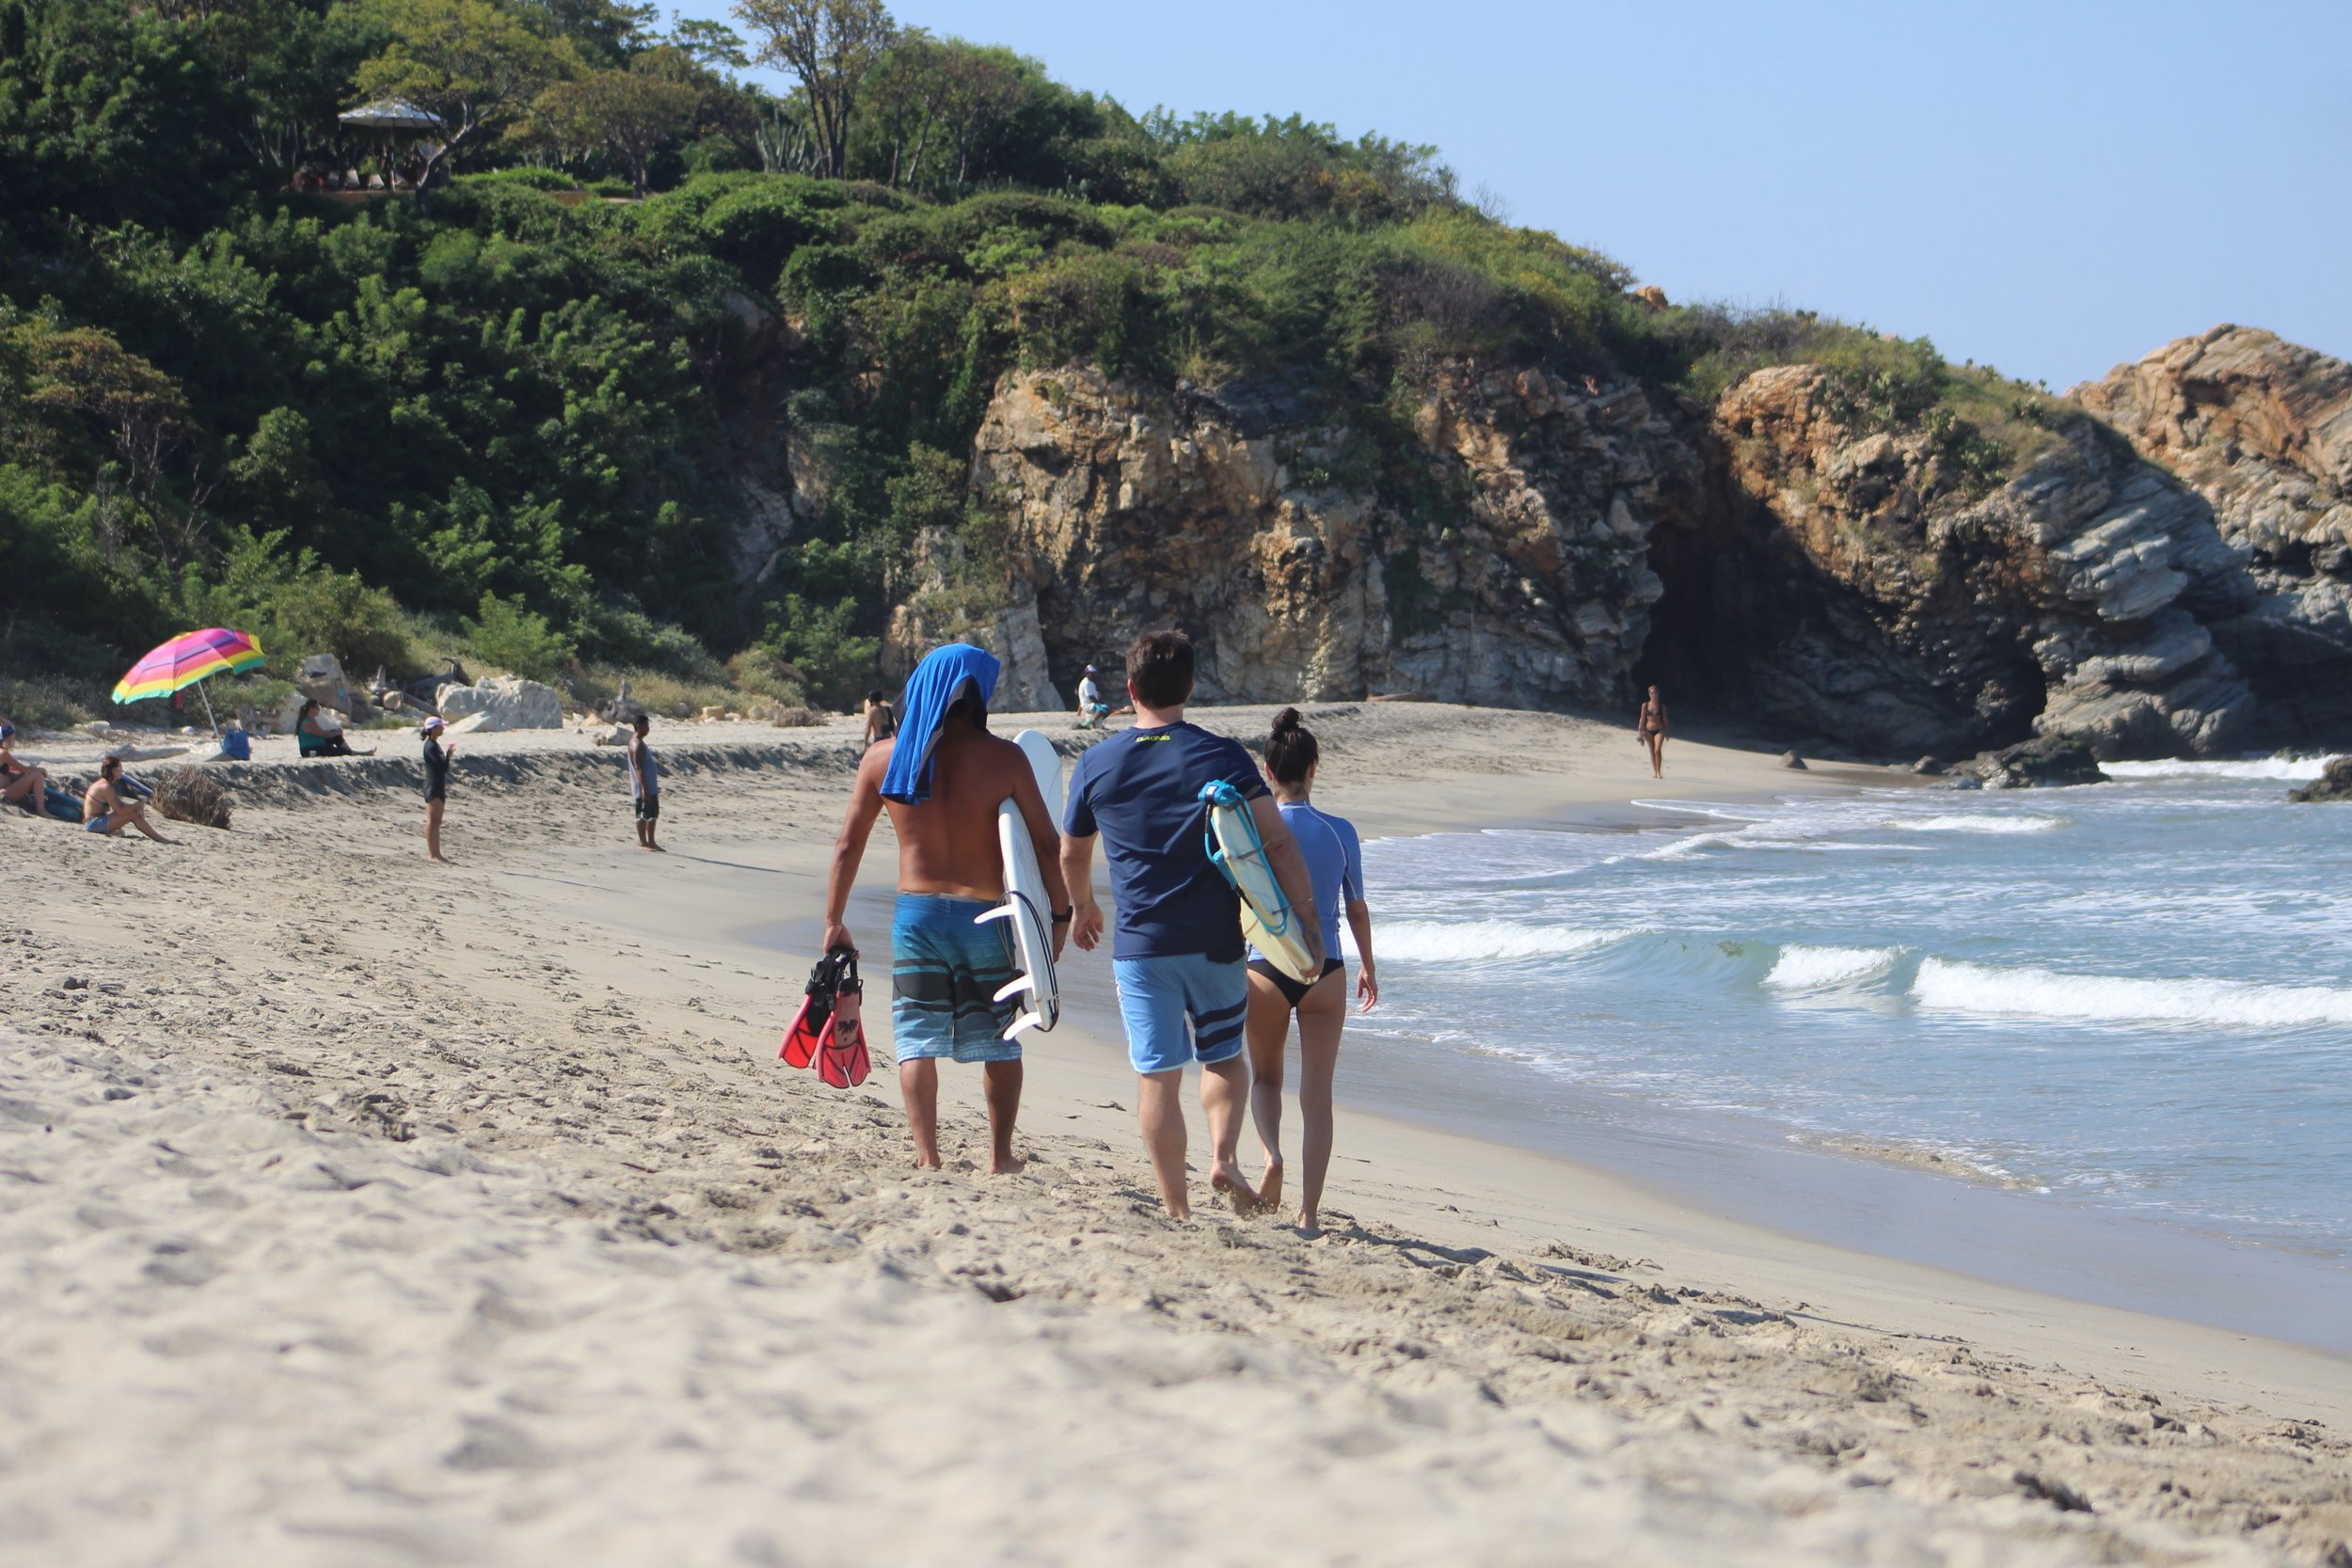 Enjoy your surf vacation in Puerto Escondido with private-to-your-group surf lessons